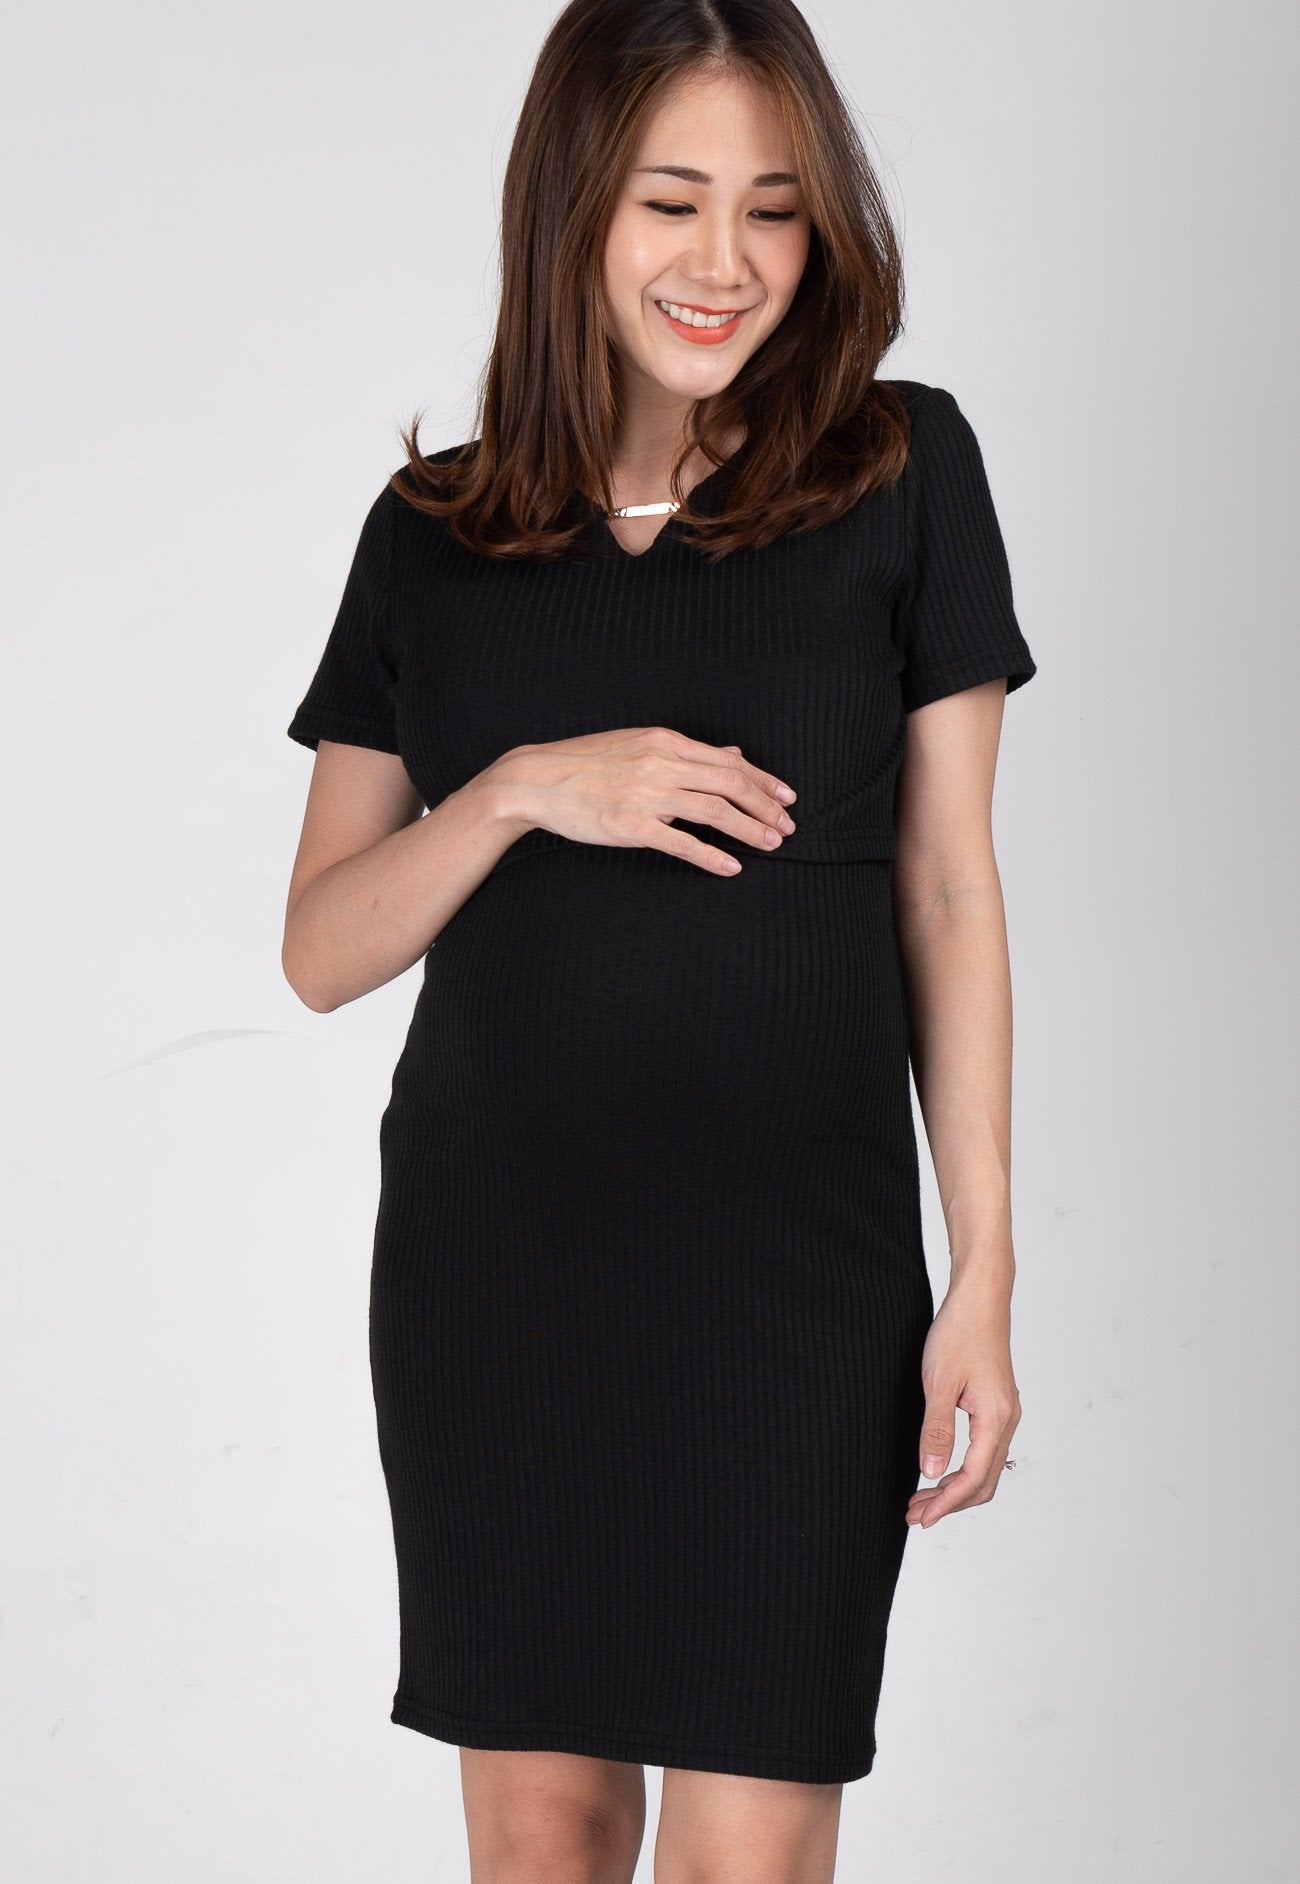 Nelya Ribbed Knit Nursing Dress in Black  by Jump Eat Cry - Maternity and nursing wear